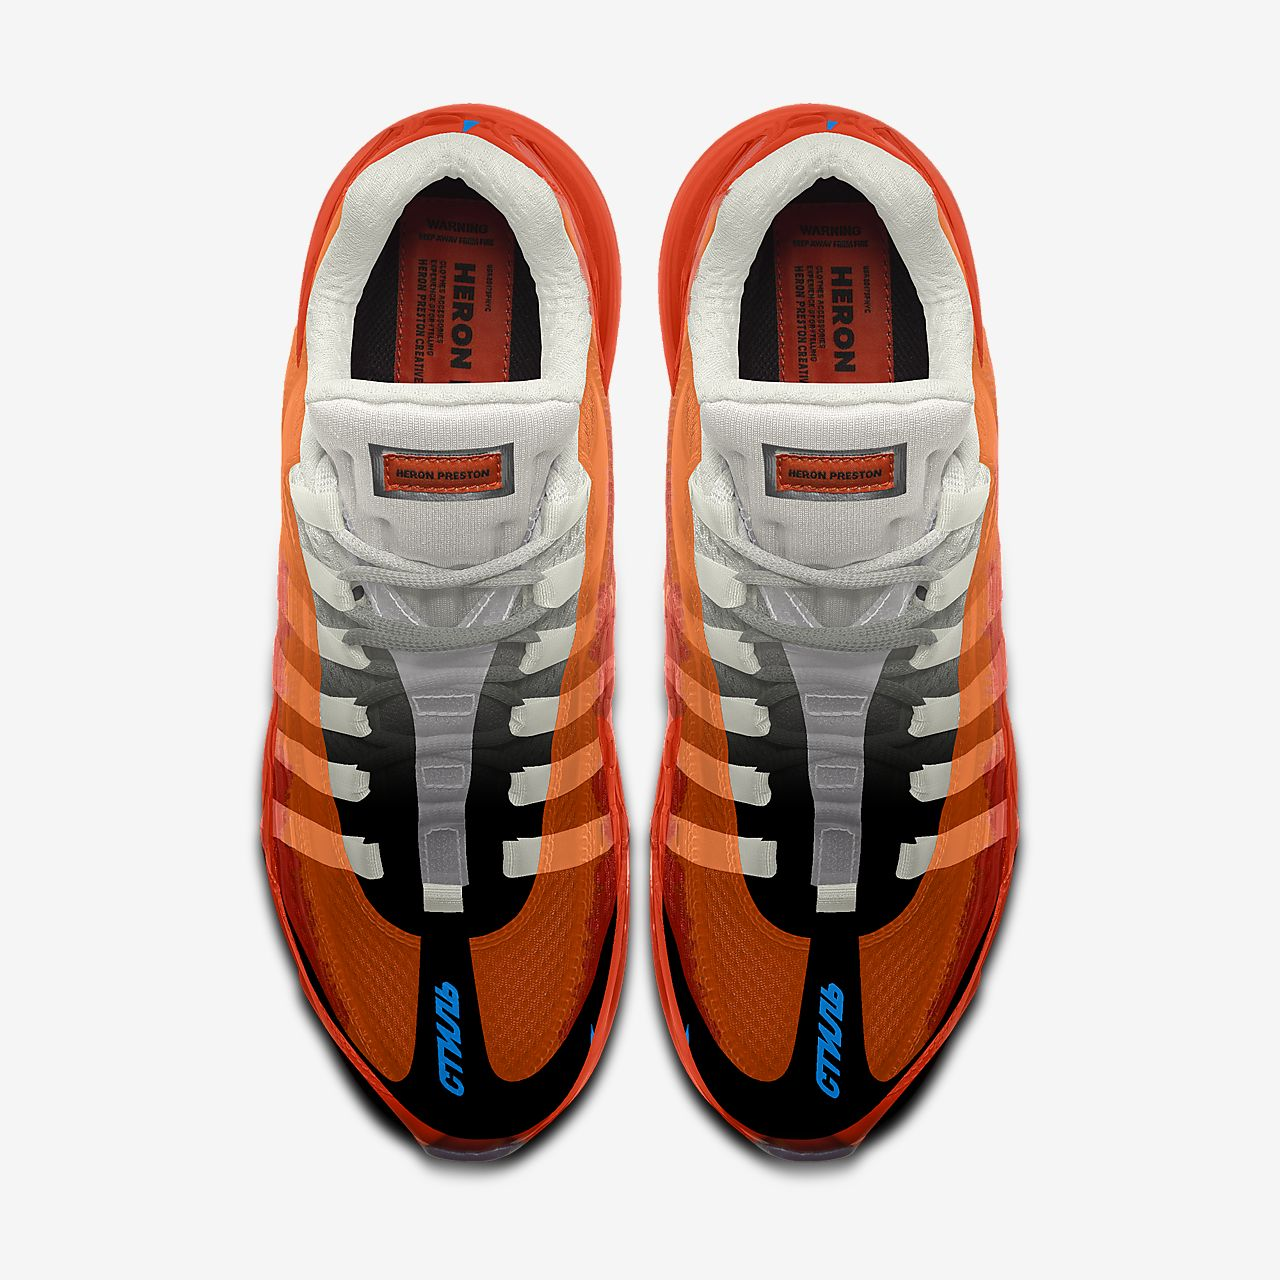 Chaussure lifestyle personnalisable Nike Air Max 95 Heron Preston By You